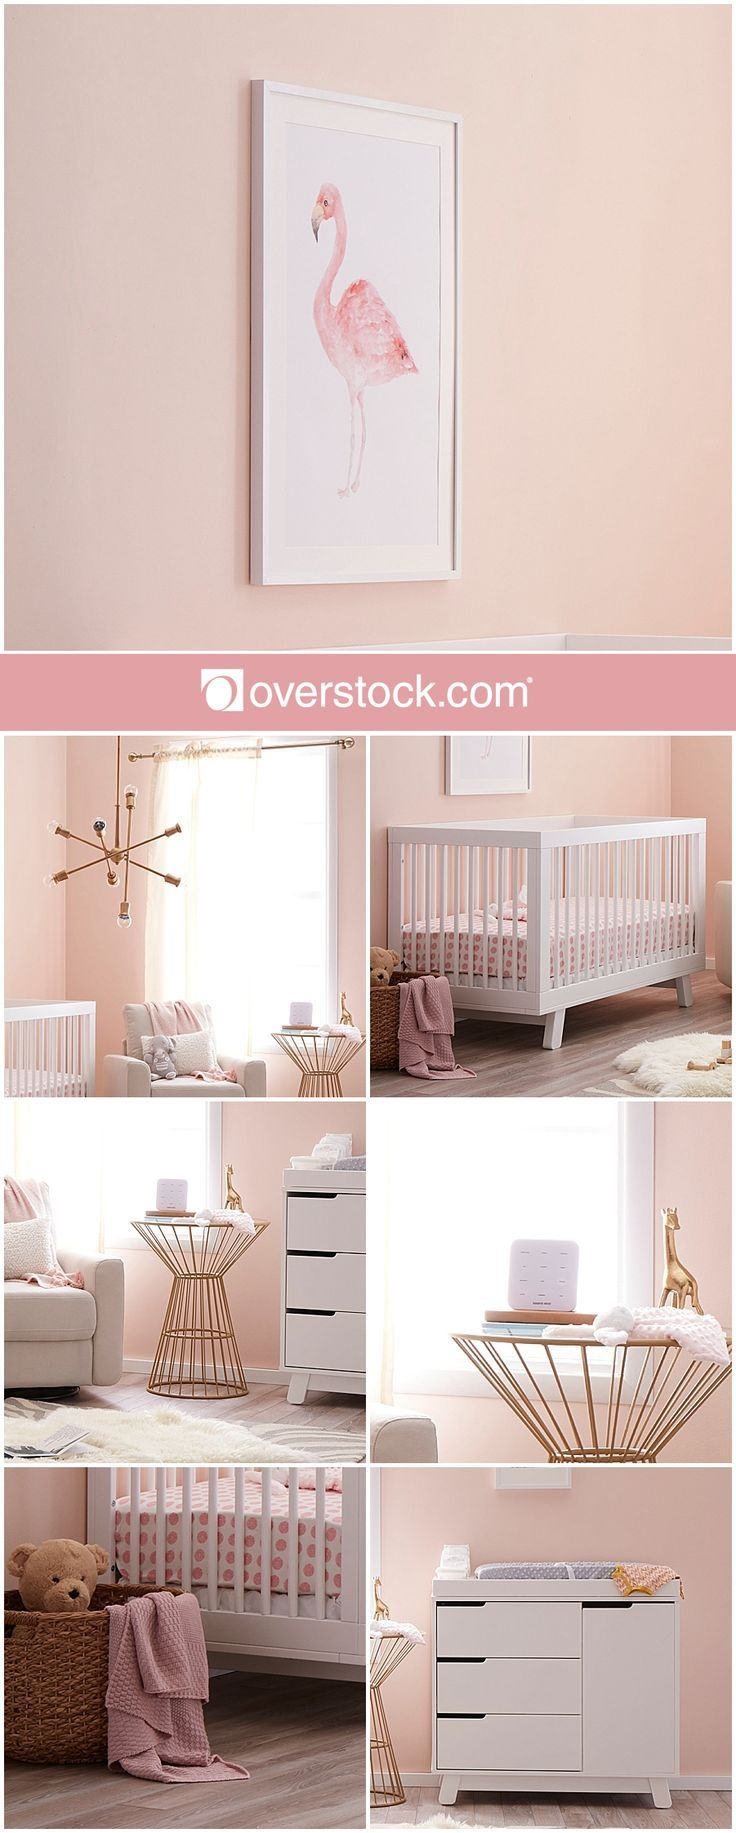 Make It Clear Youve Welcomed A Baby Girl With A Nursery Thats Unmistakably Feminine